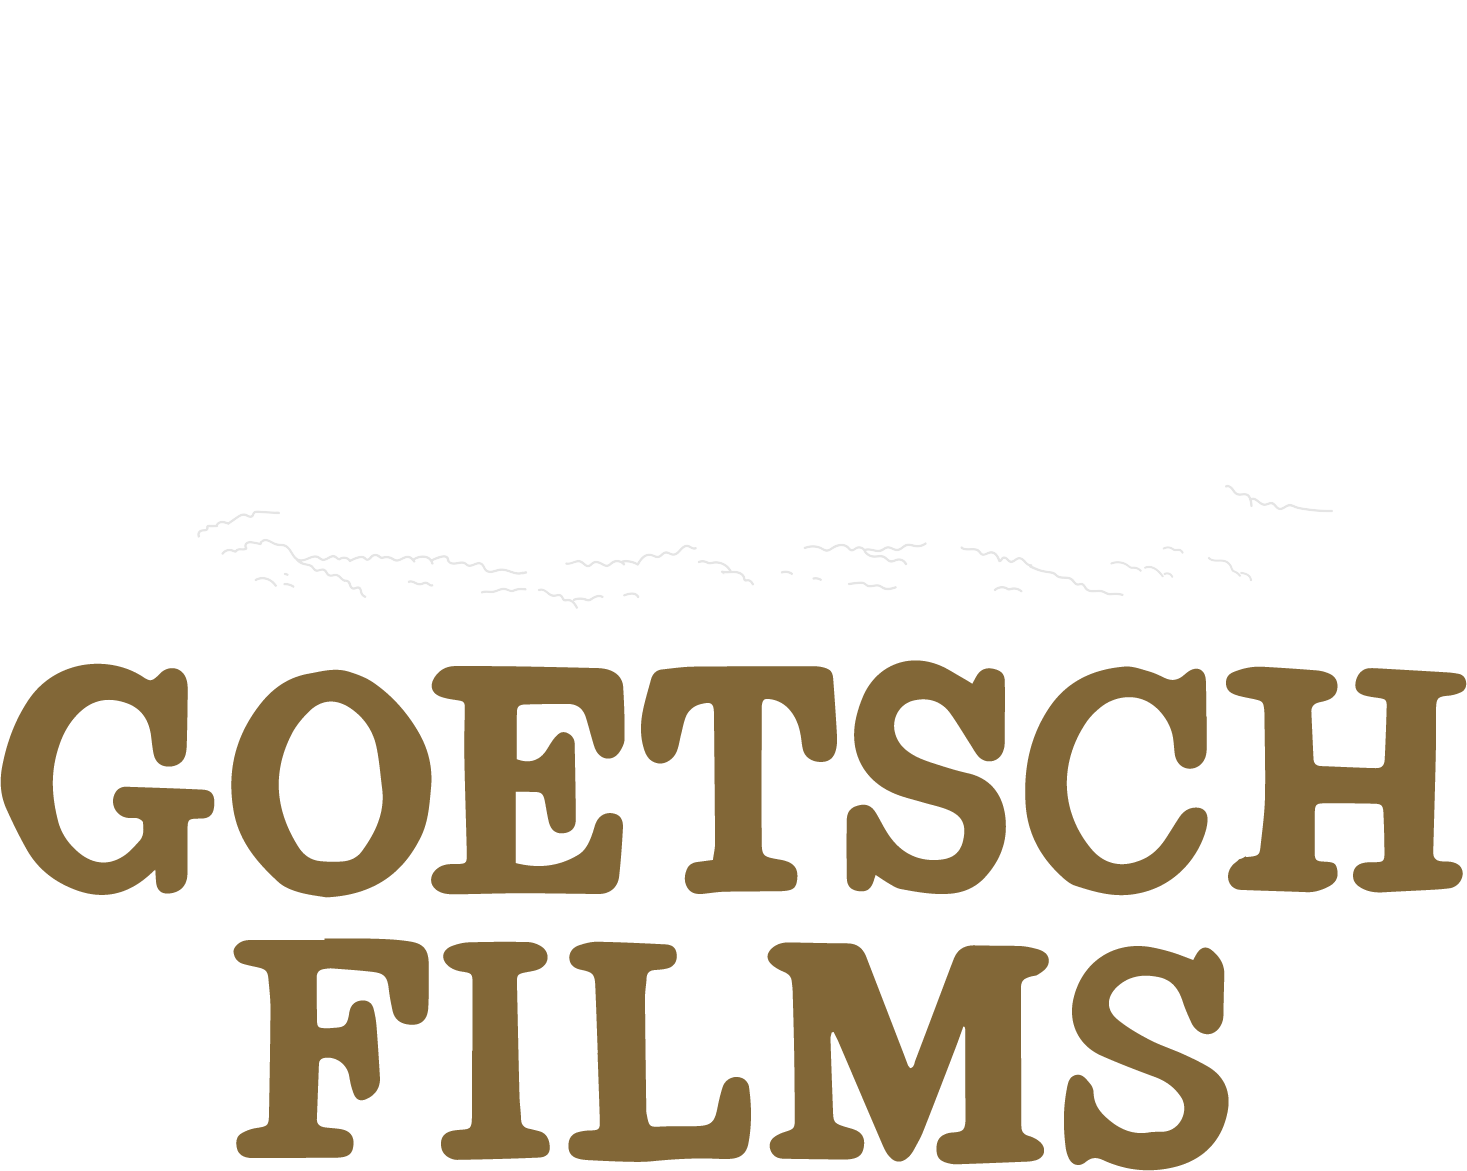 Goetsch Films